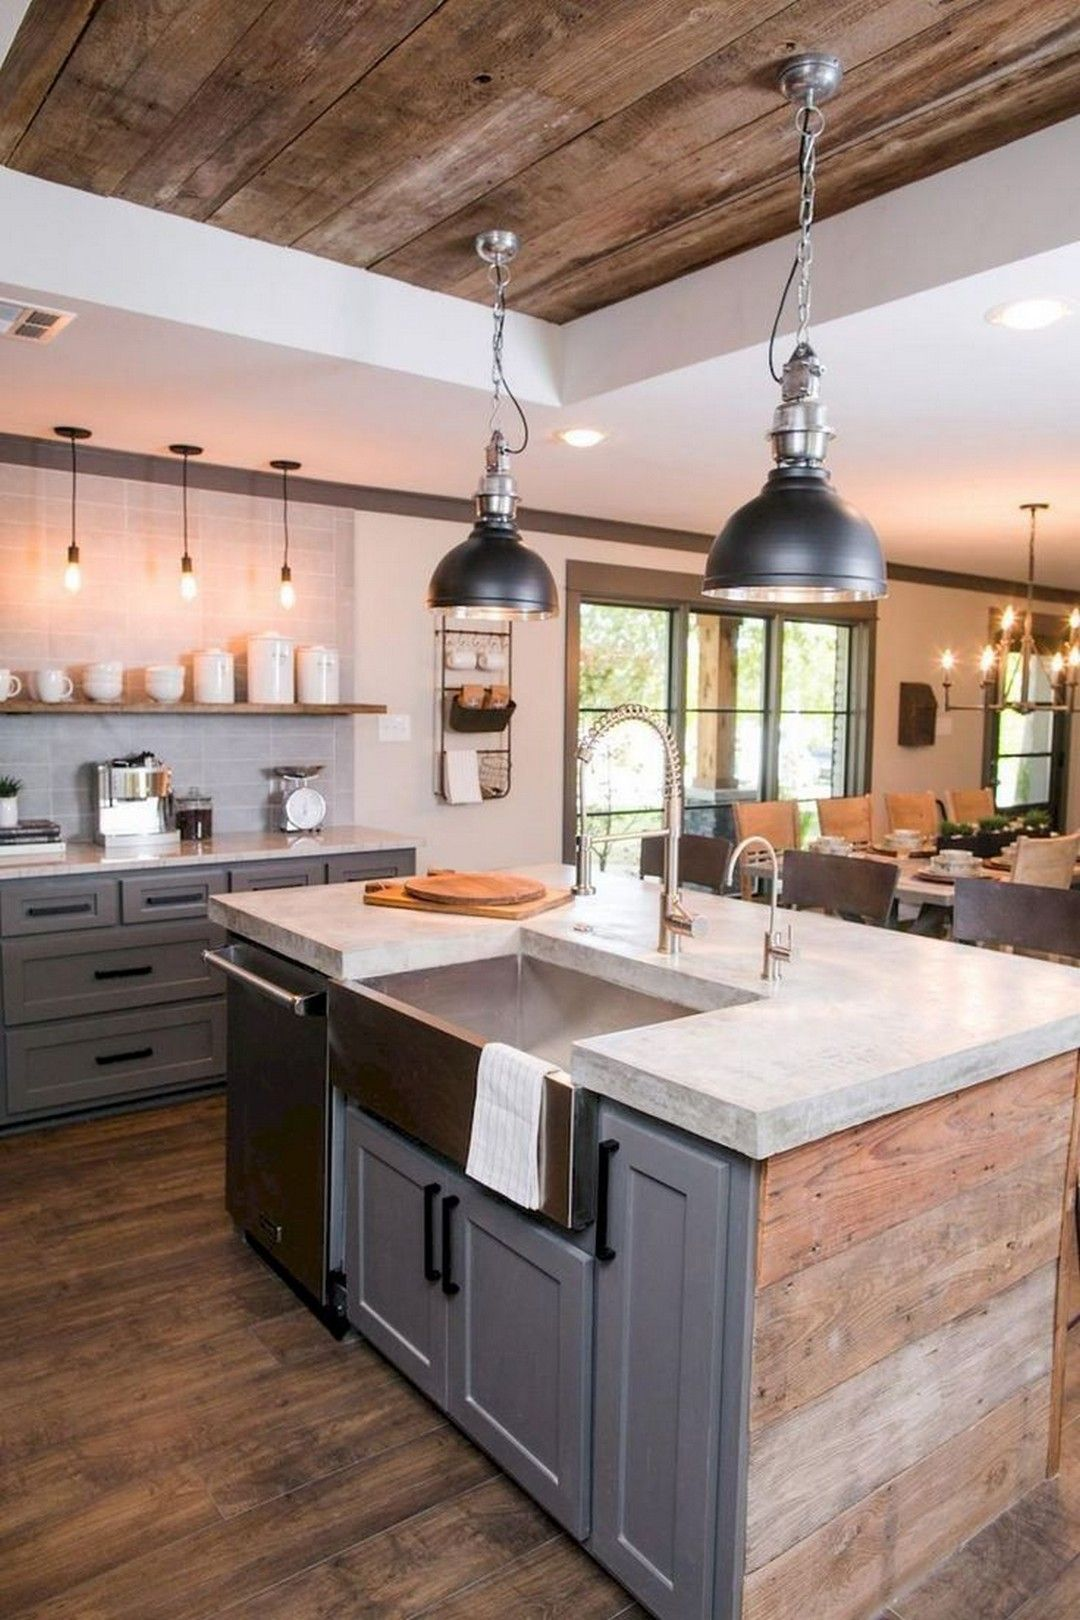 81 Rustic Kitchen With Shiplap From Home Depot Rustic Kitchen Kitchen Island Decor Kitchen Remodel